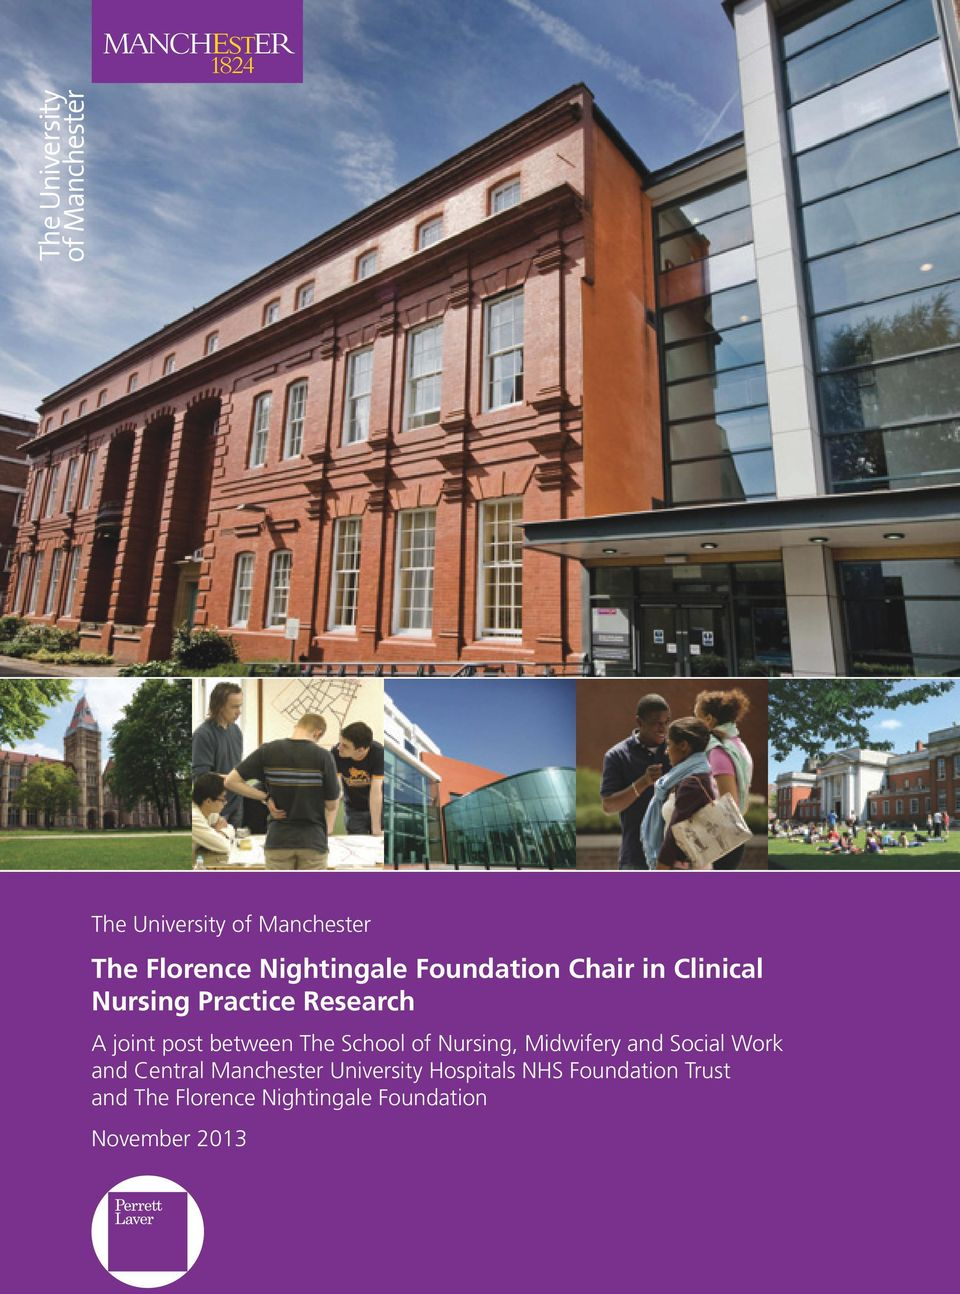 Nursing, Midwifery and Social Work and Central Manchester University